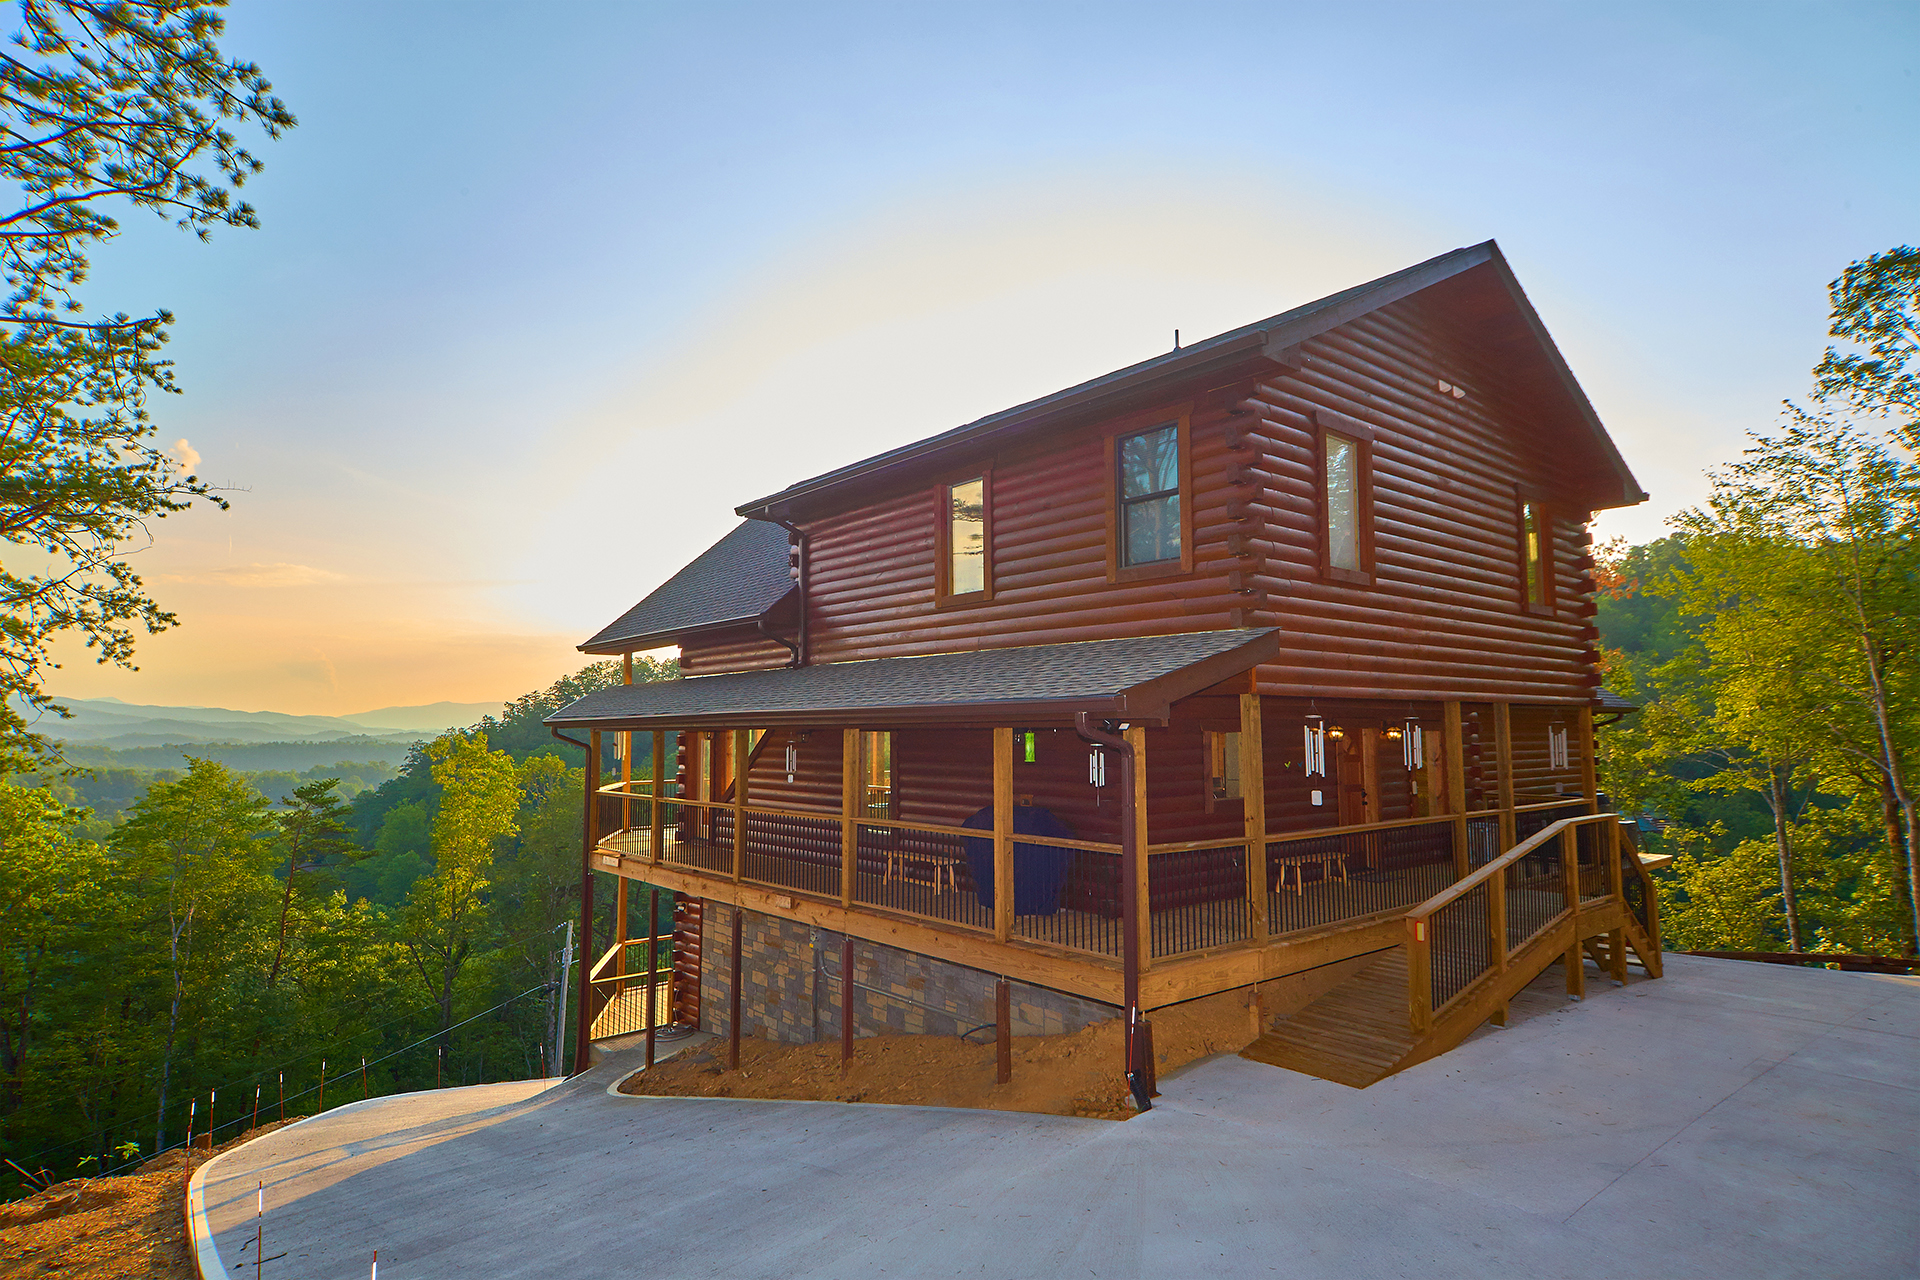 Astonishing Cozy Mountain Cabins Cabins In Gatlinburg And Pigeon Forge Tn Interior Design Ideas Tzicisoteloinfo